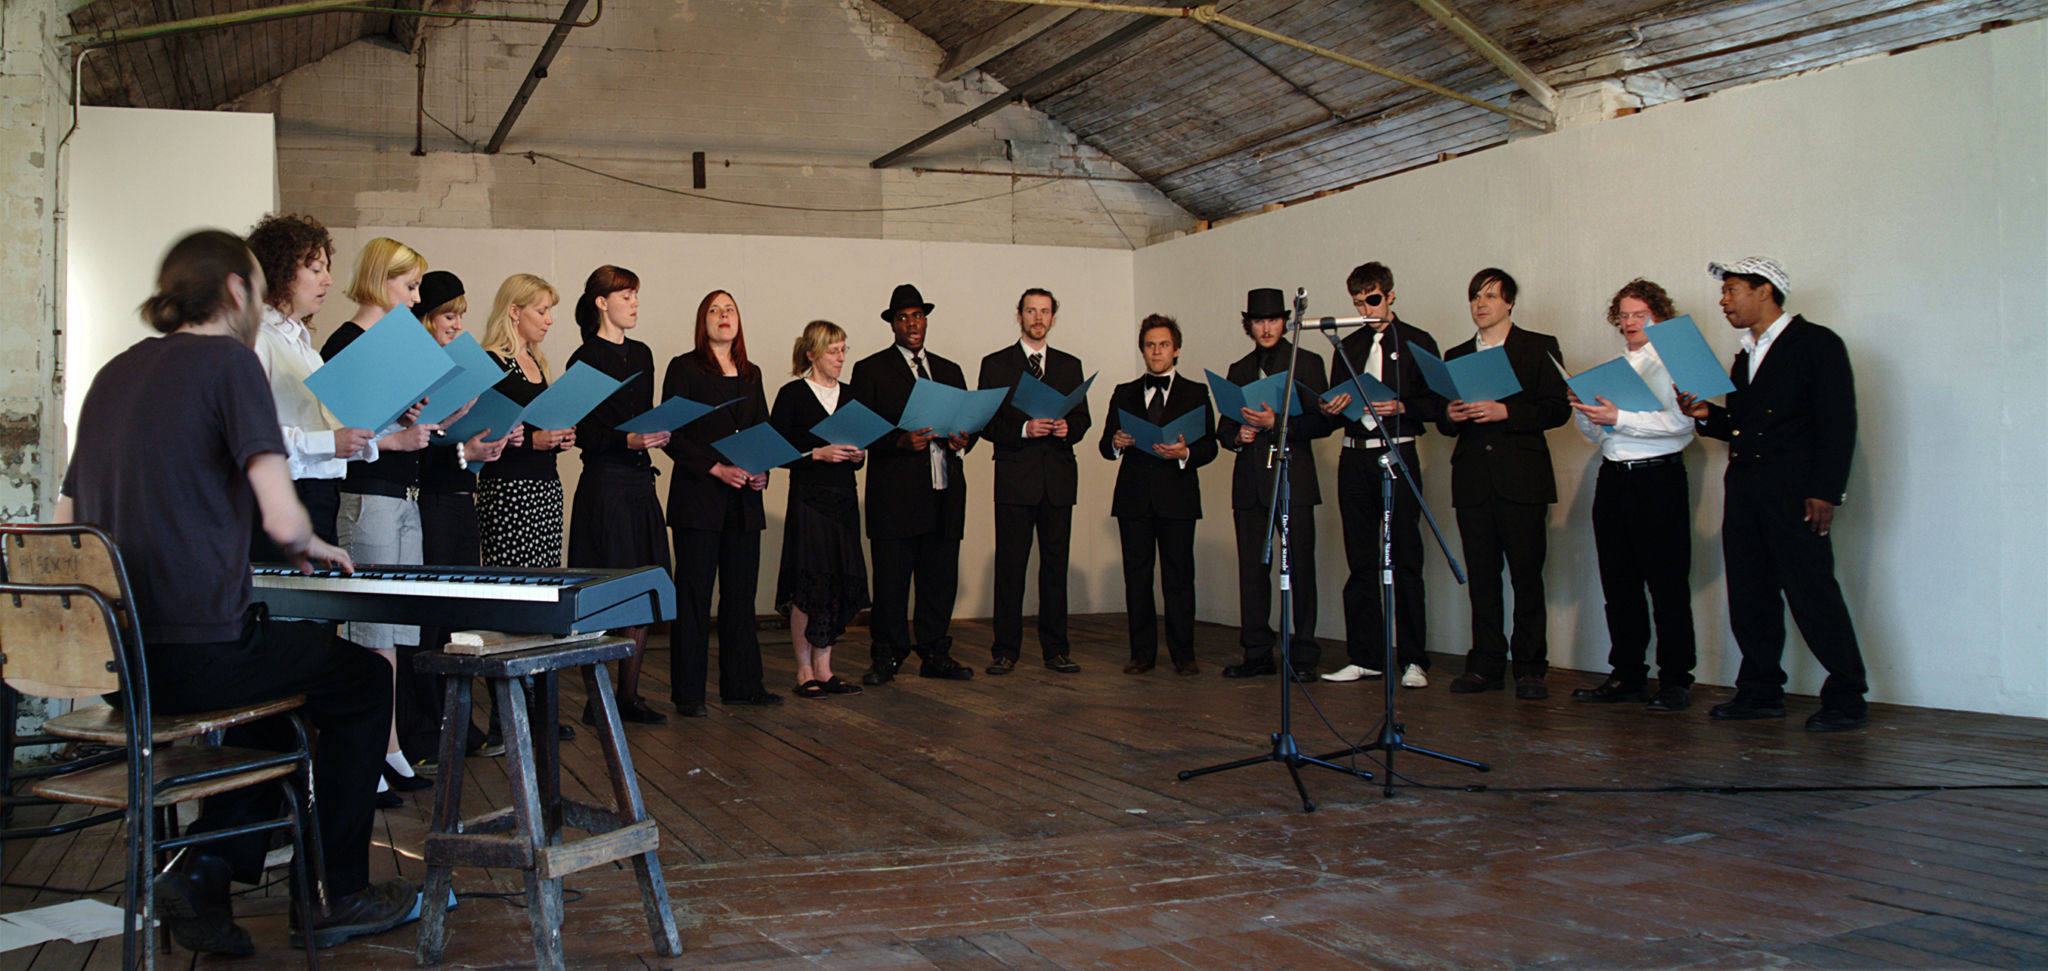 FACT: Artist Talk & Film: The Liverpool Complaints Choir